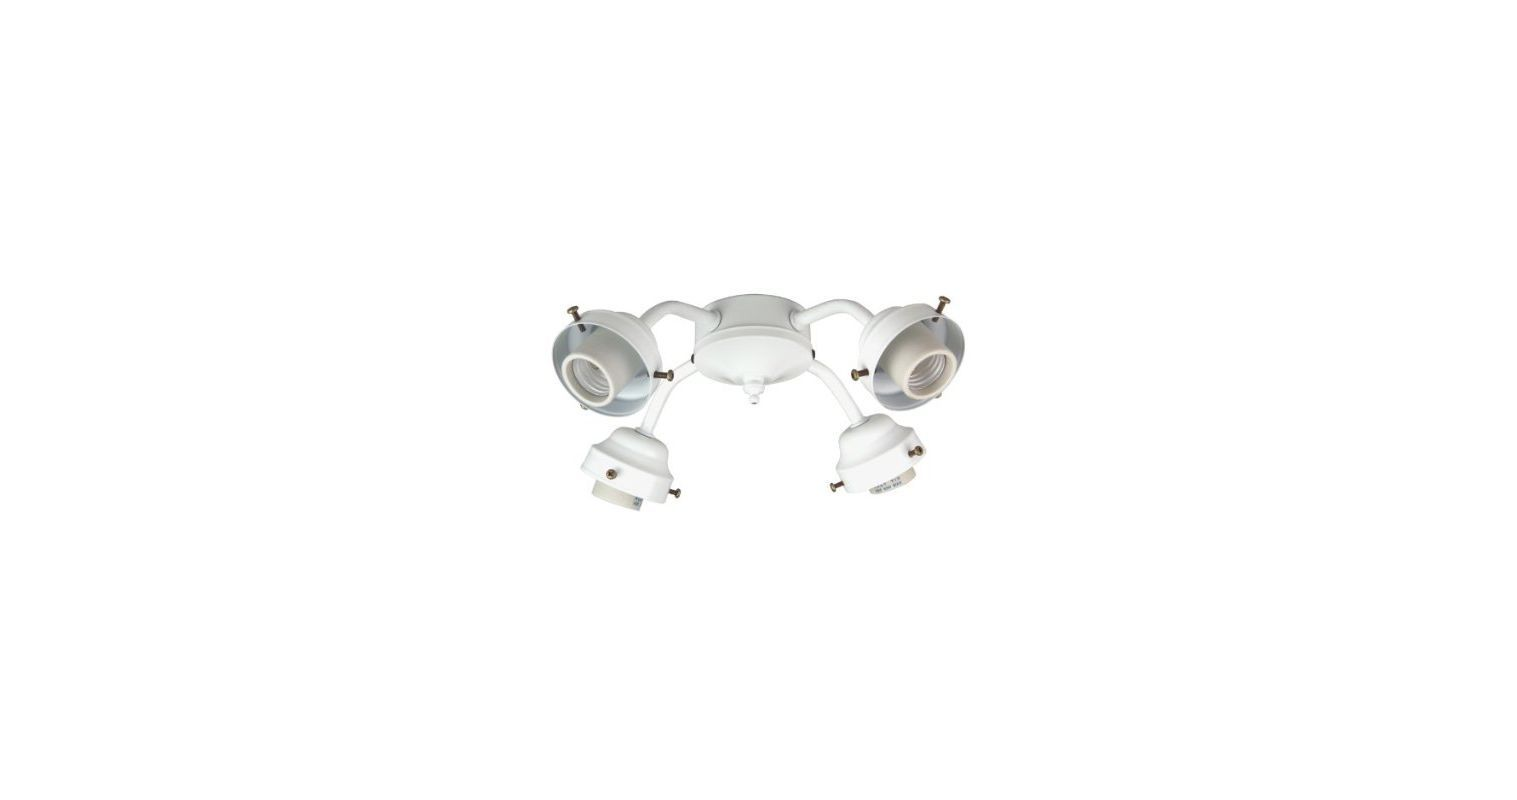 Craftmade F400l Ceiling Fan Accessories Ceiling Lights White